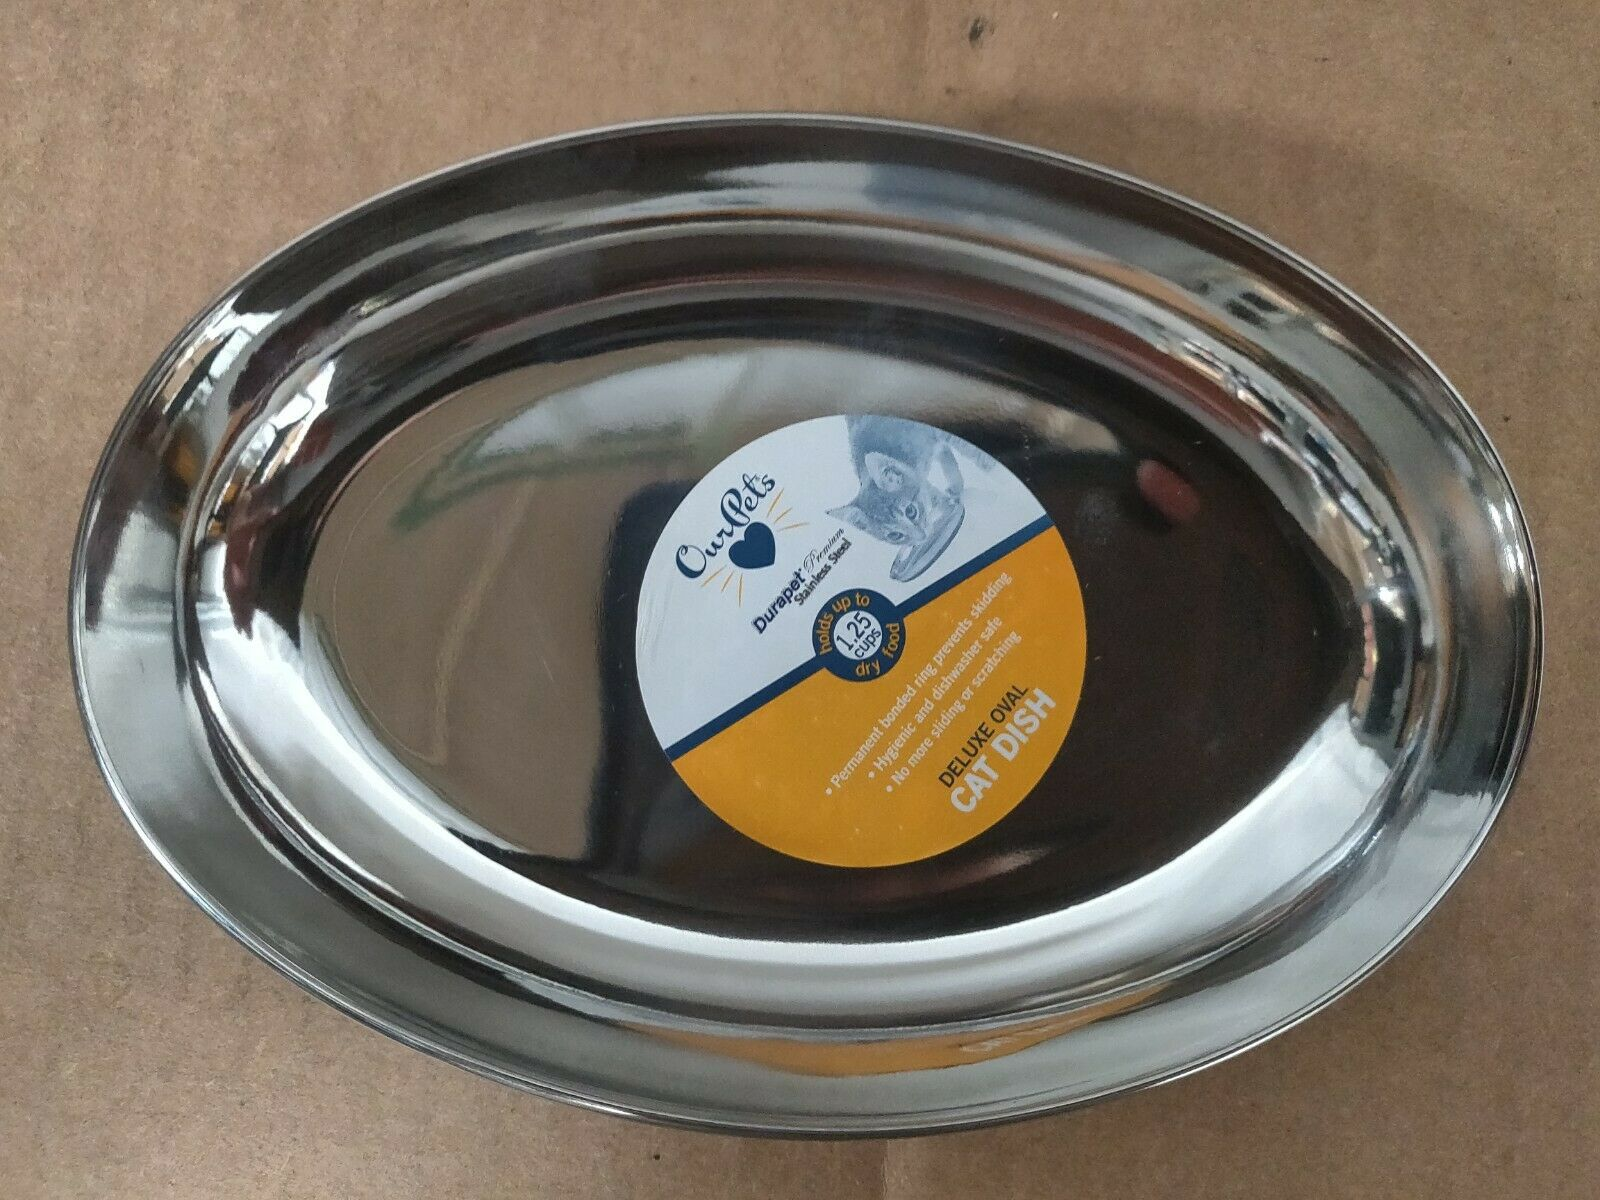 OUR PETS COMPANY Durapet Stainless Steel Deluxe Oval Cat Dish, 1.25-cups